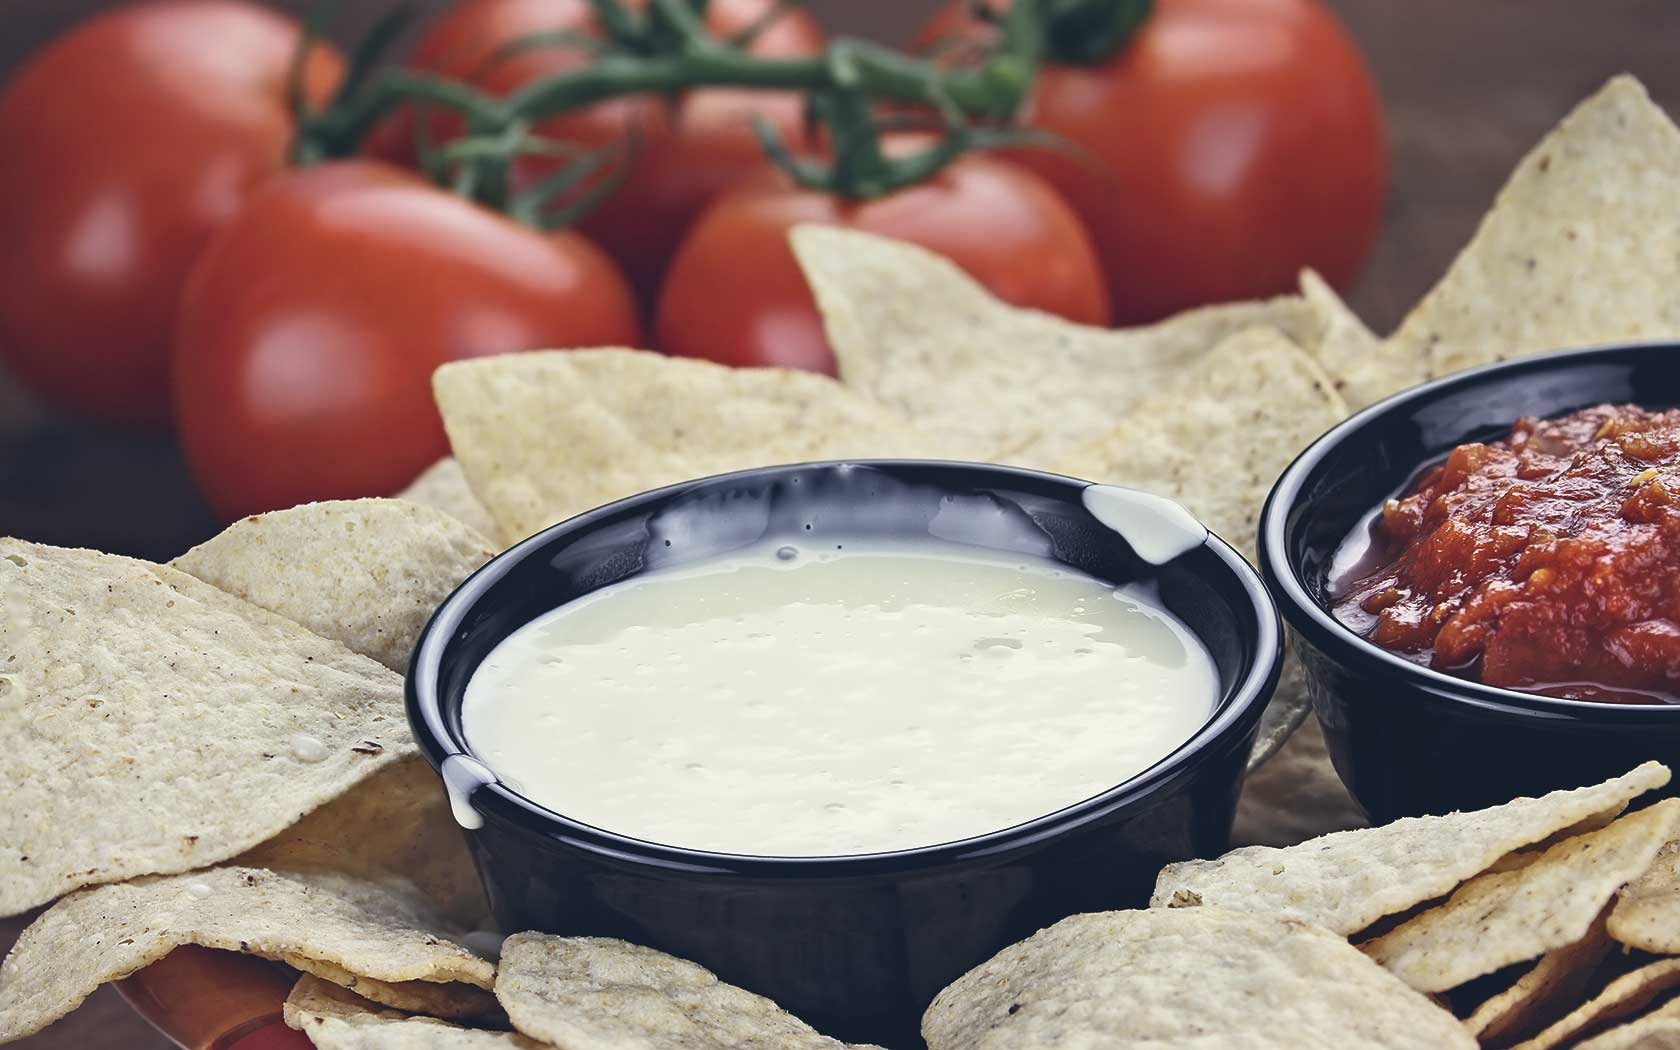 Recipe #2: MCT High-Protein Queso